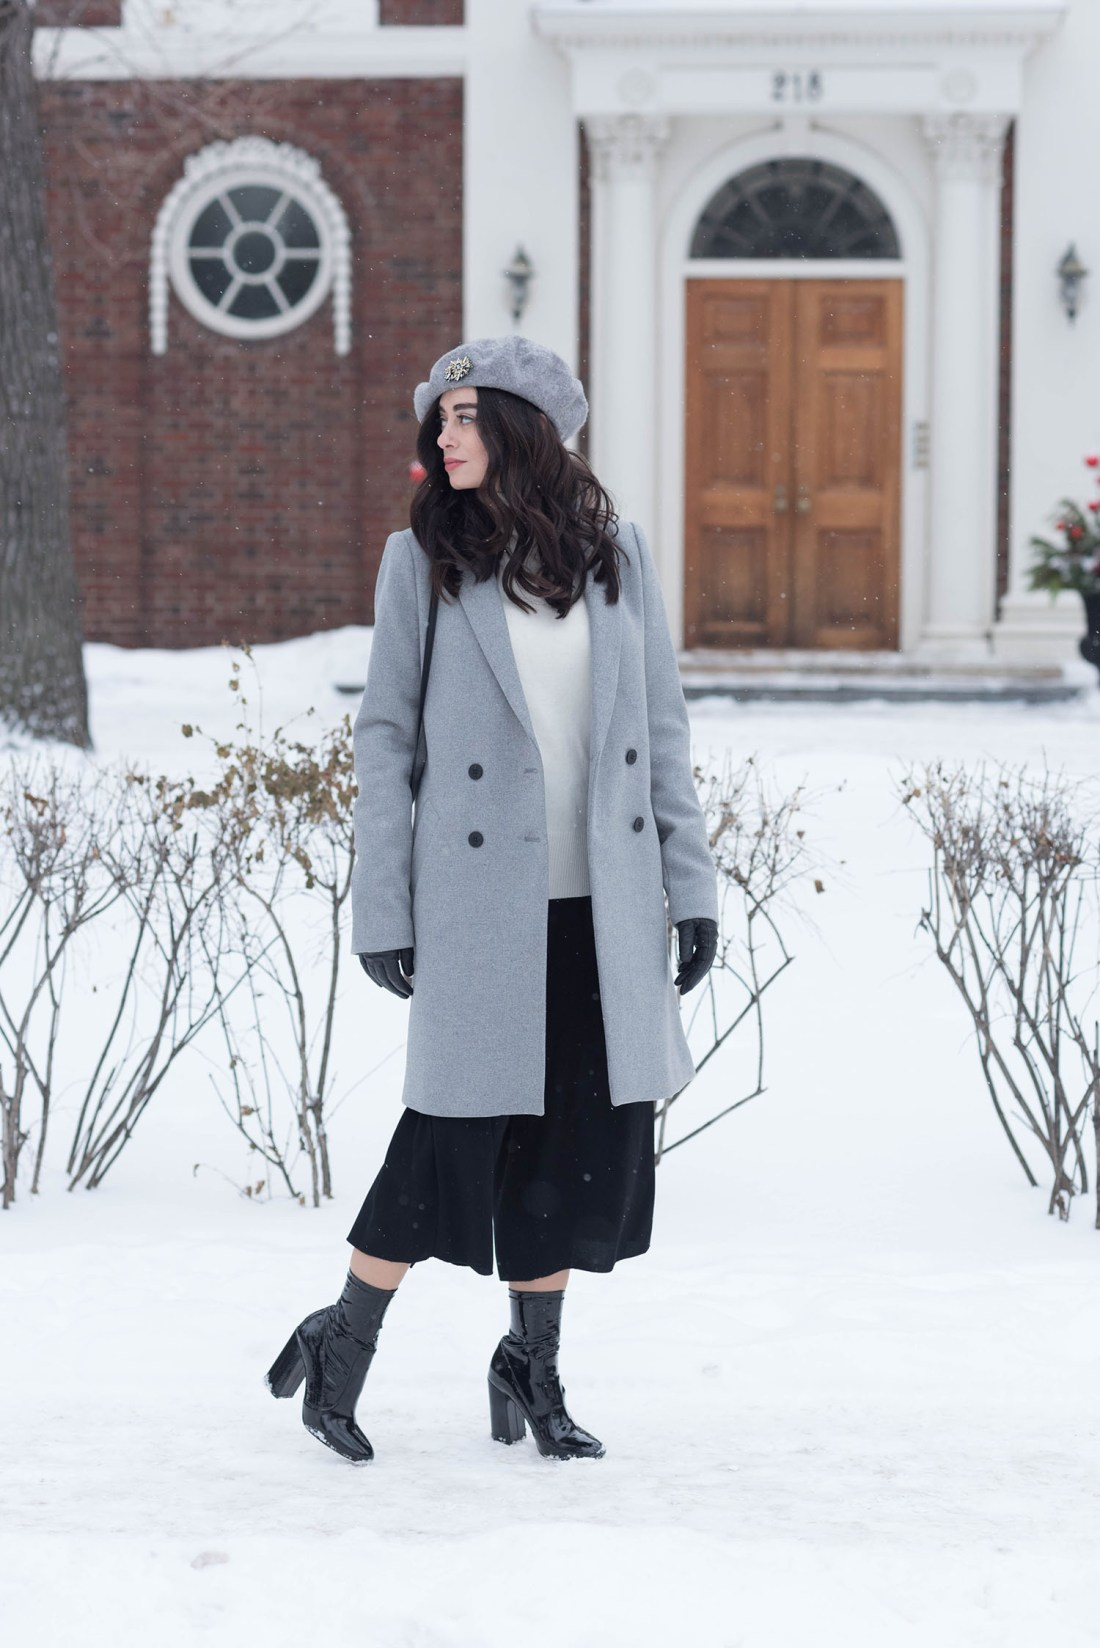 Fashion blogger Cee Fardoe of Coco & Vera walks down Roslyn Road in Winnipeg on a snowy day, wearing a grey Zara coat and Raye patent boots